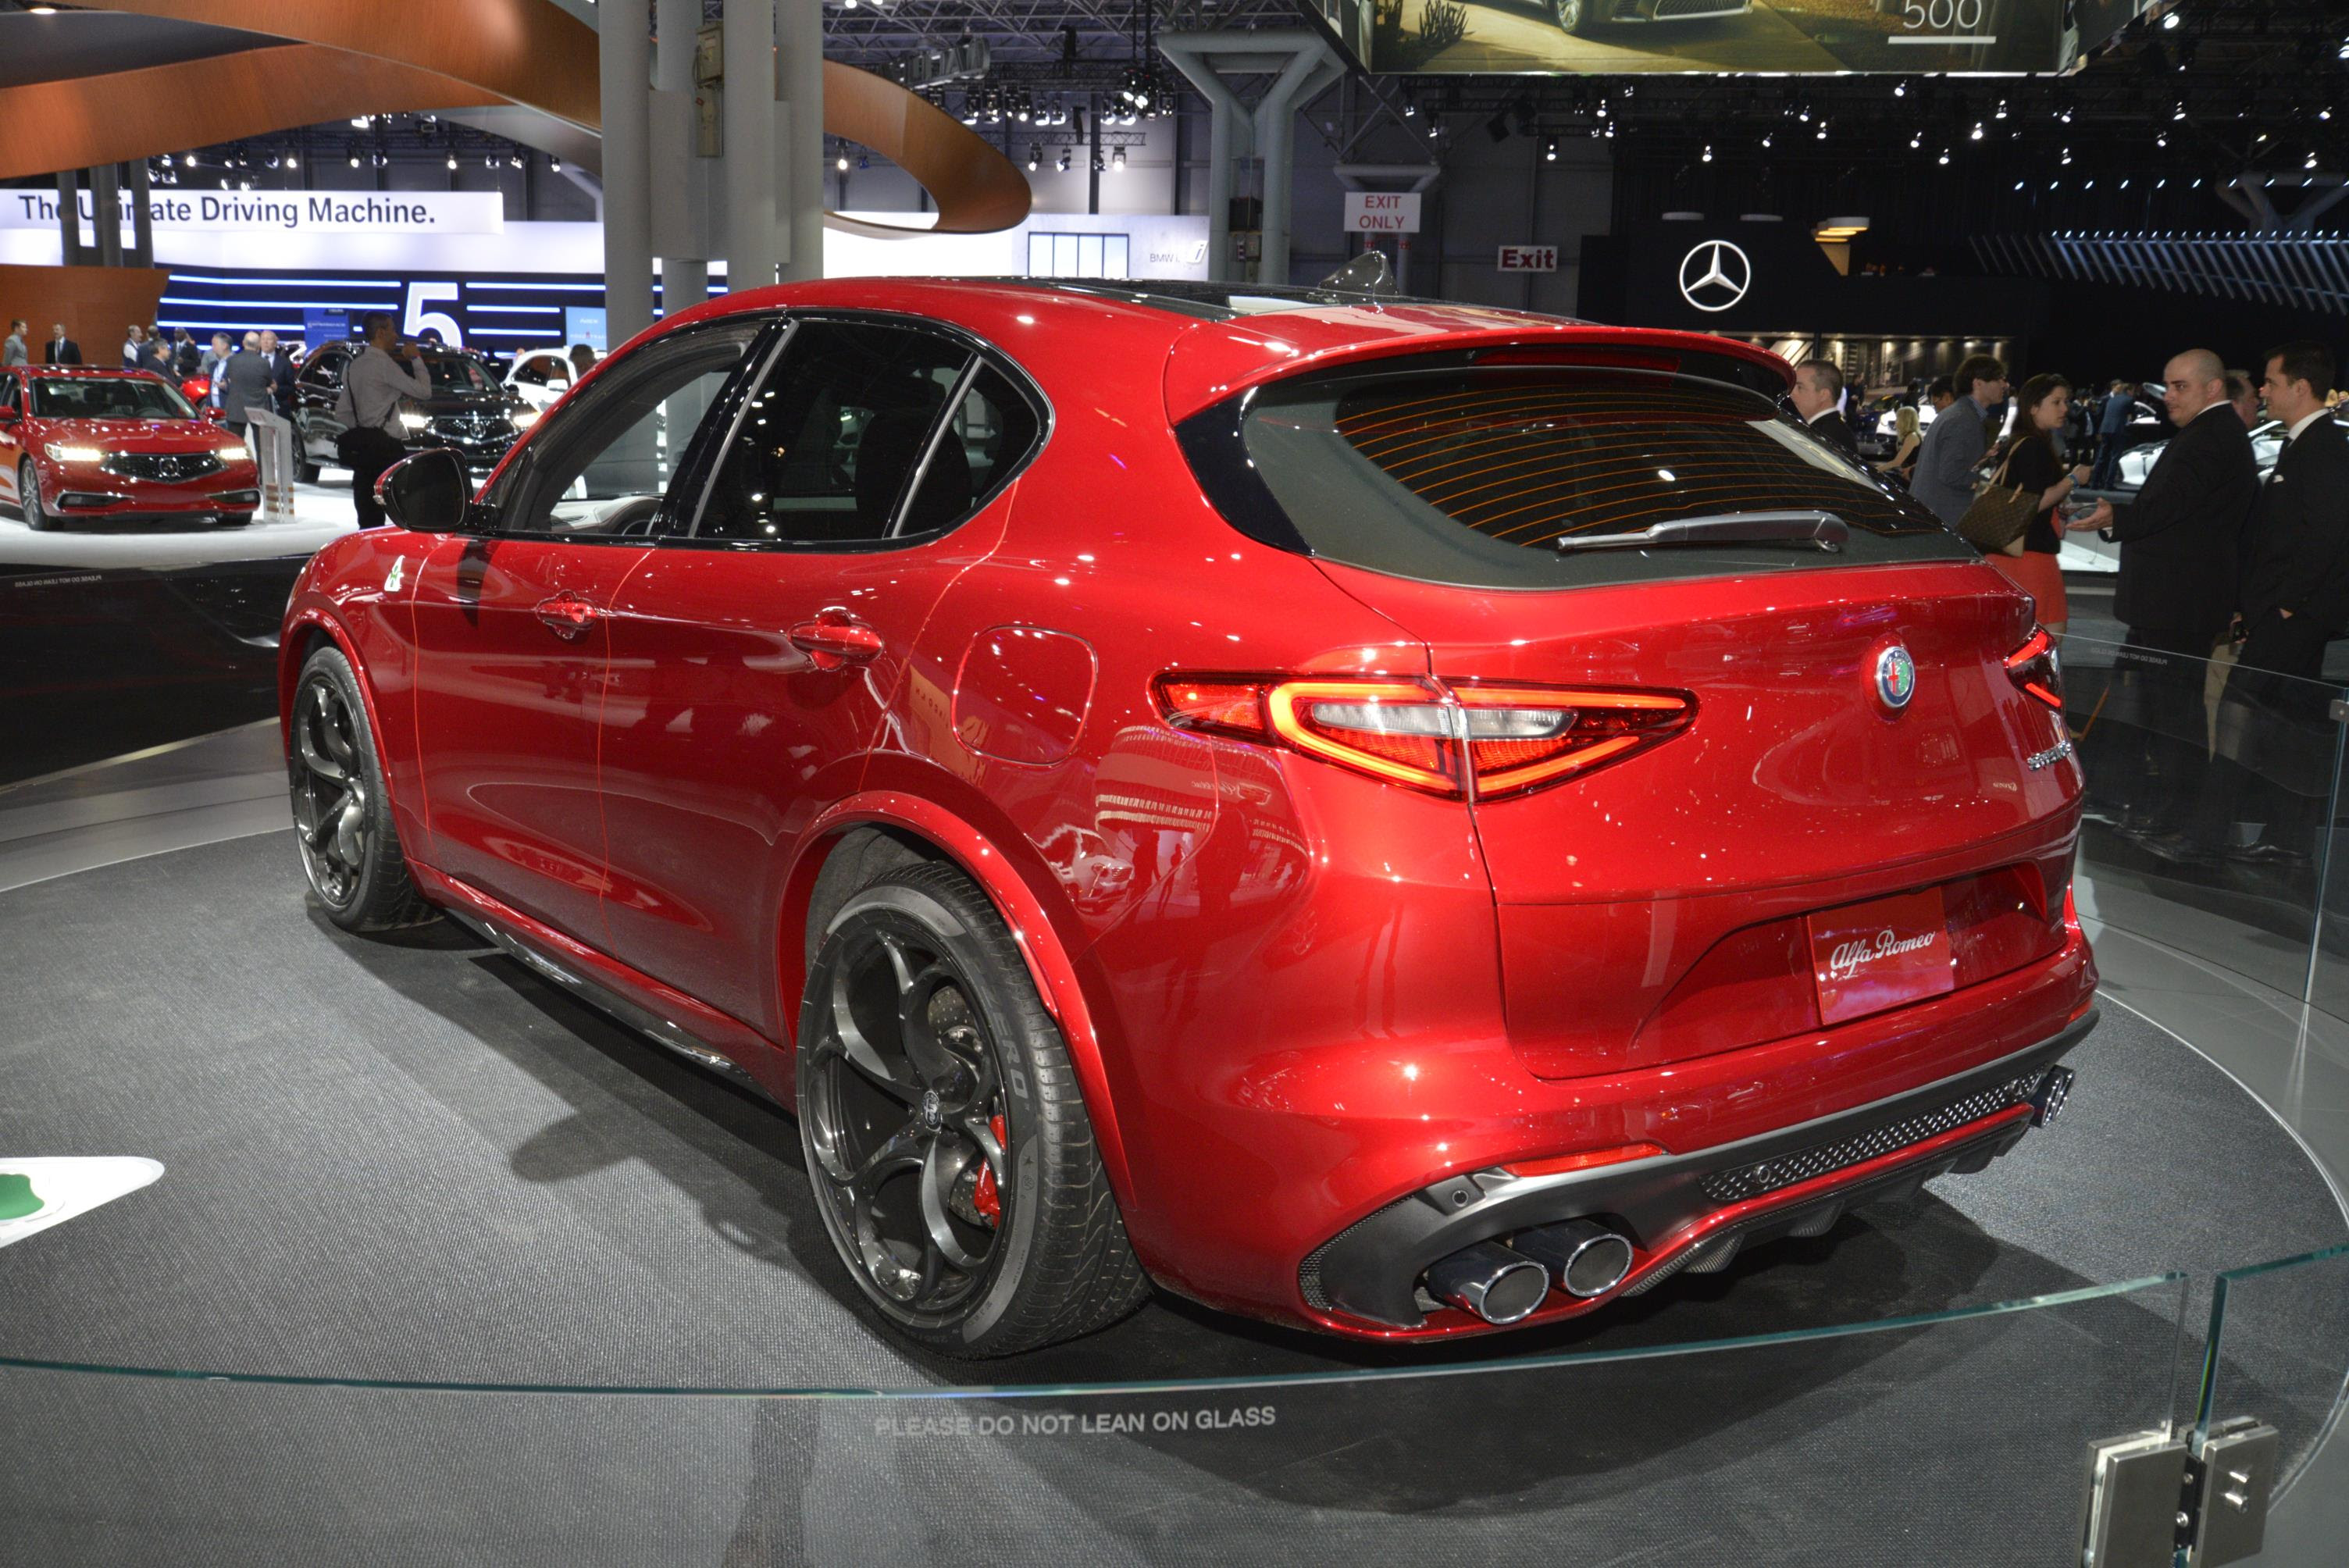 ALFA ROMEO DEBUTS THE 2018 STELVIO SUV LINEUP AT THE 2017